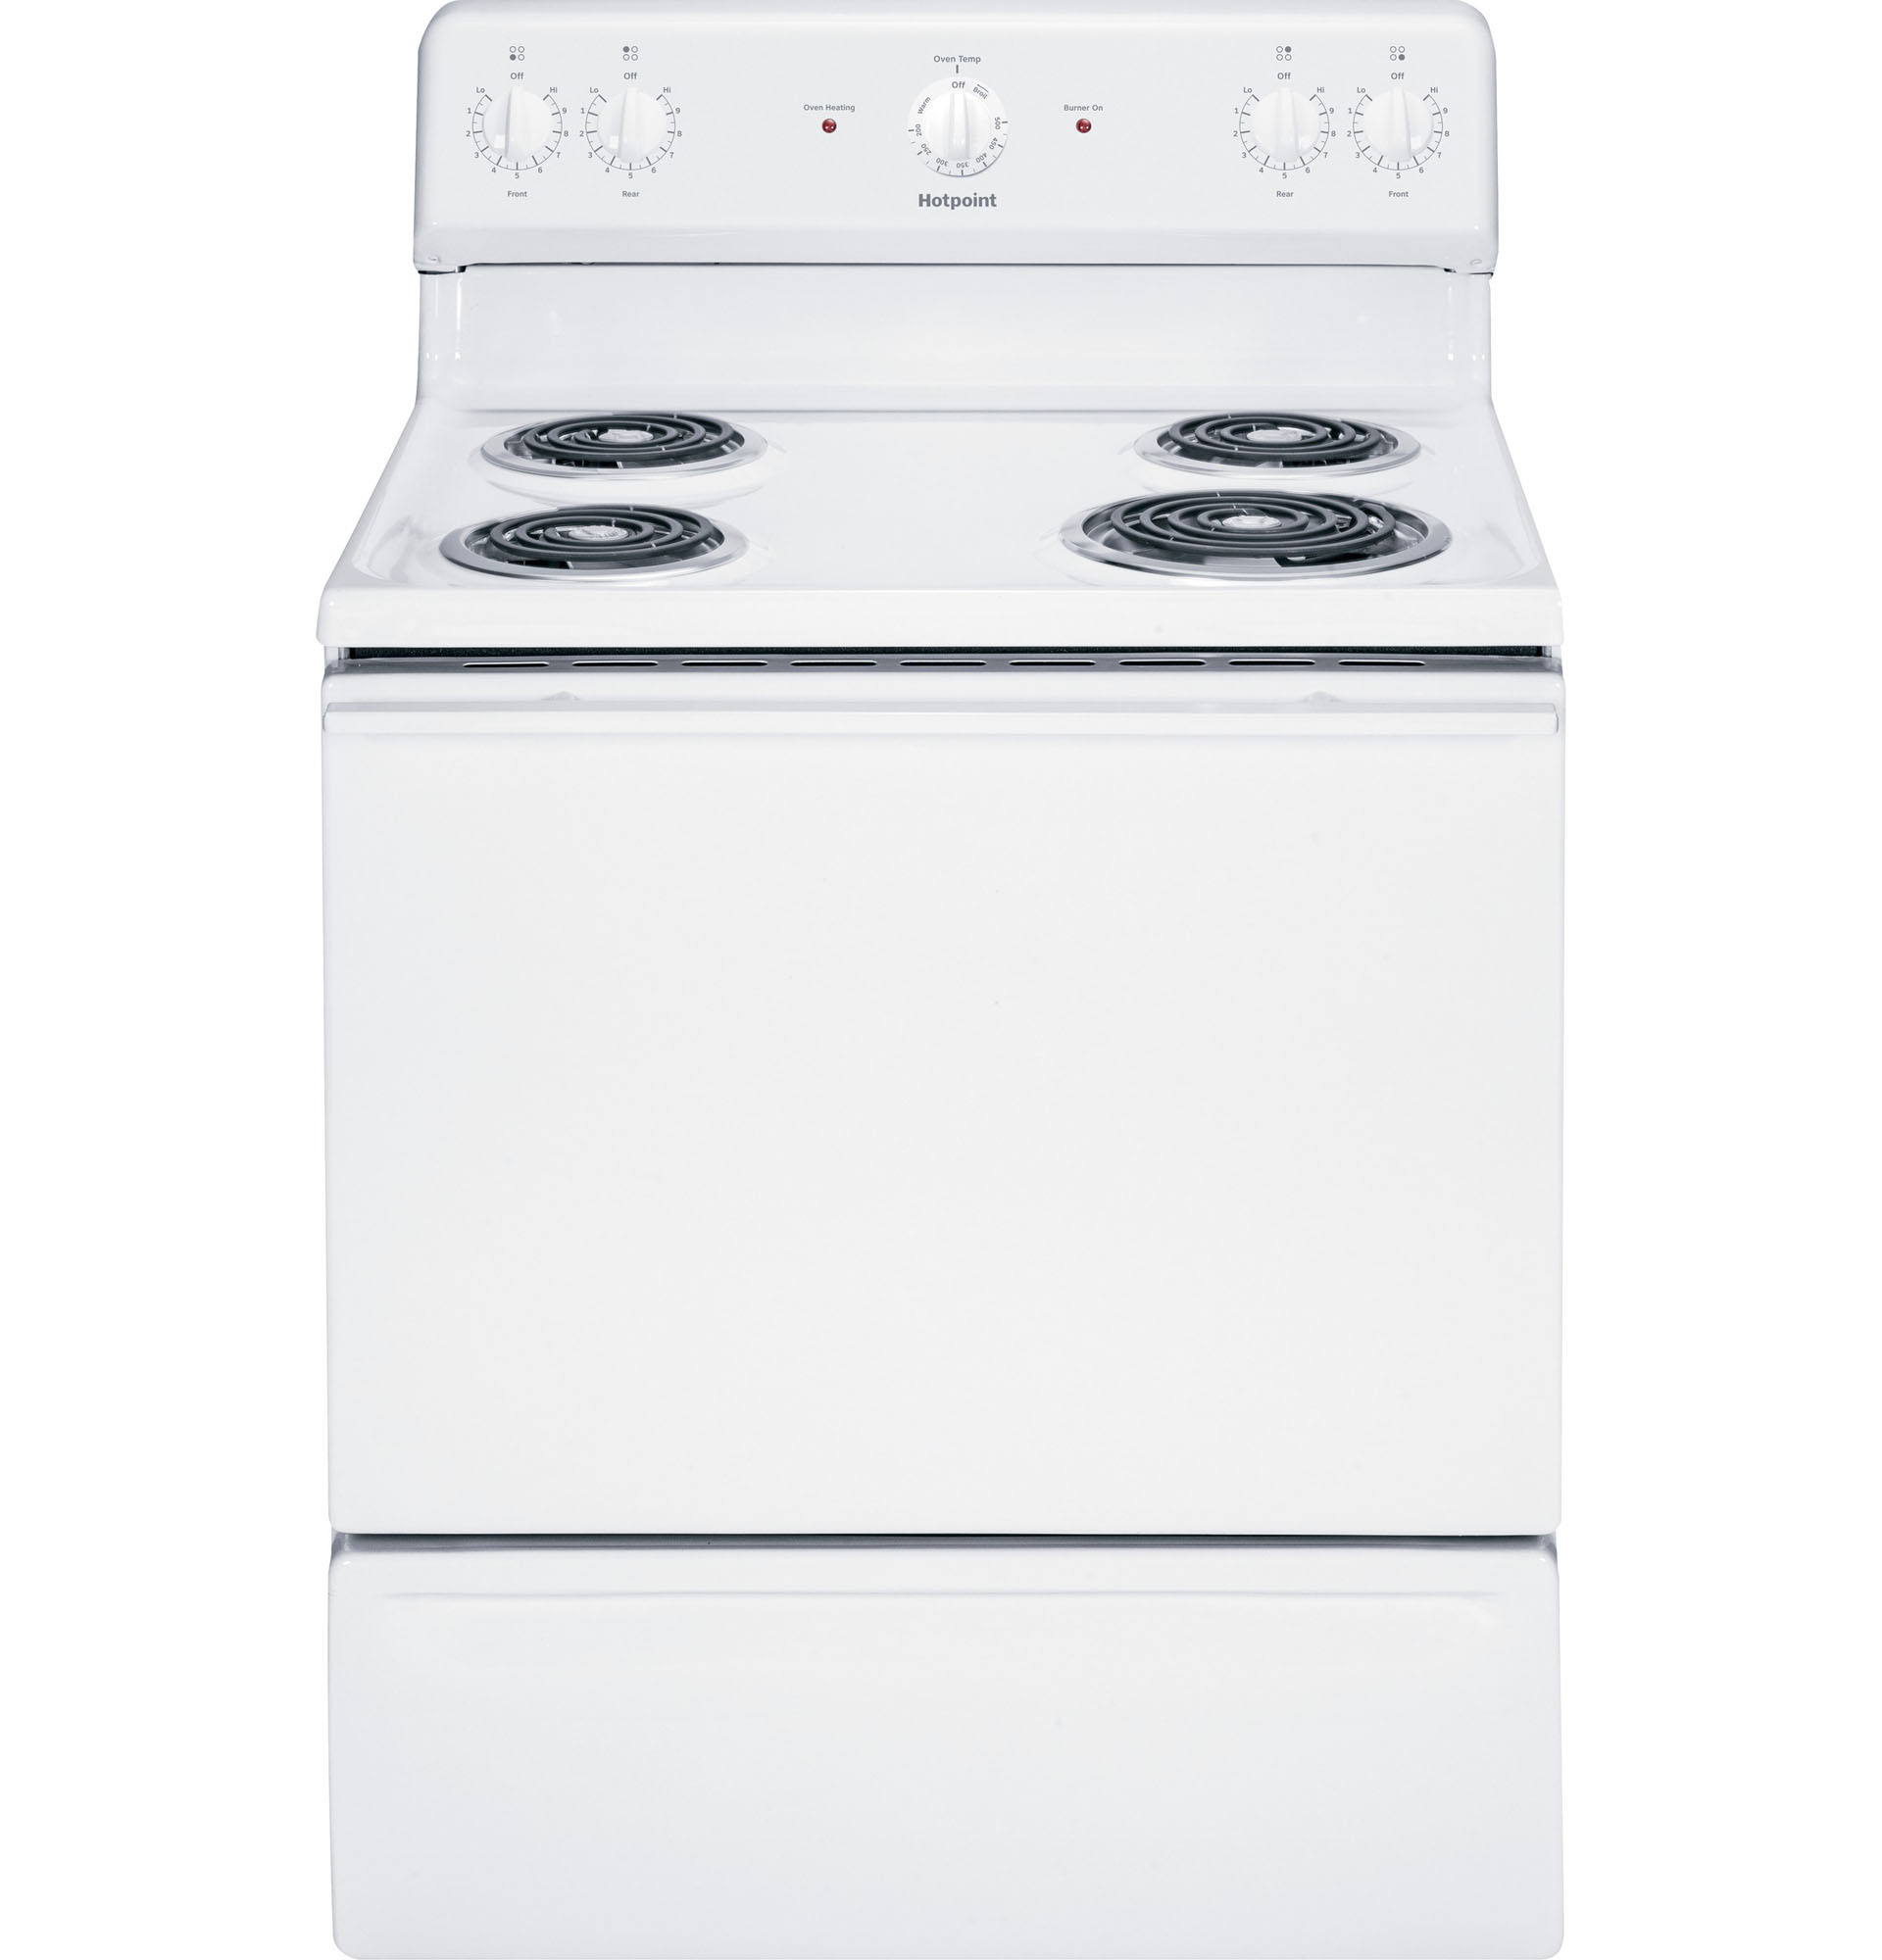 "UPC GE Hotpoint 30"" White Free Standing Electric"